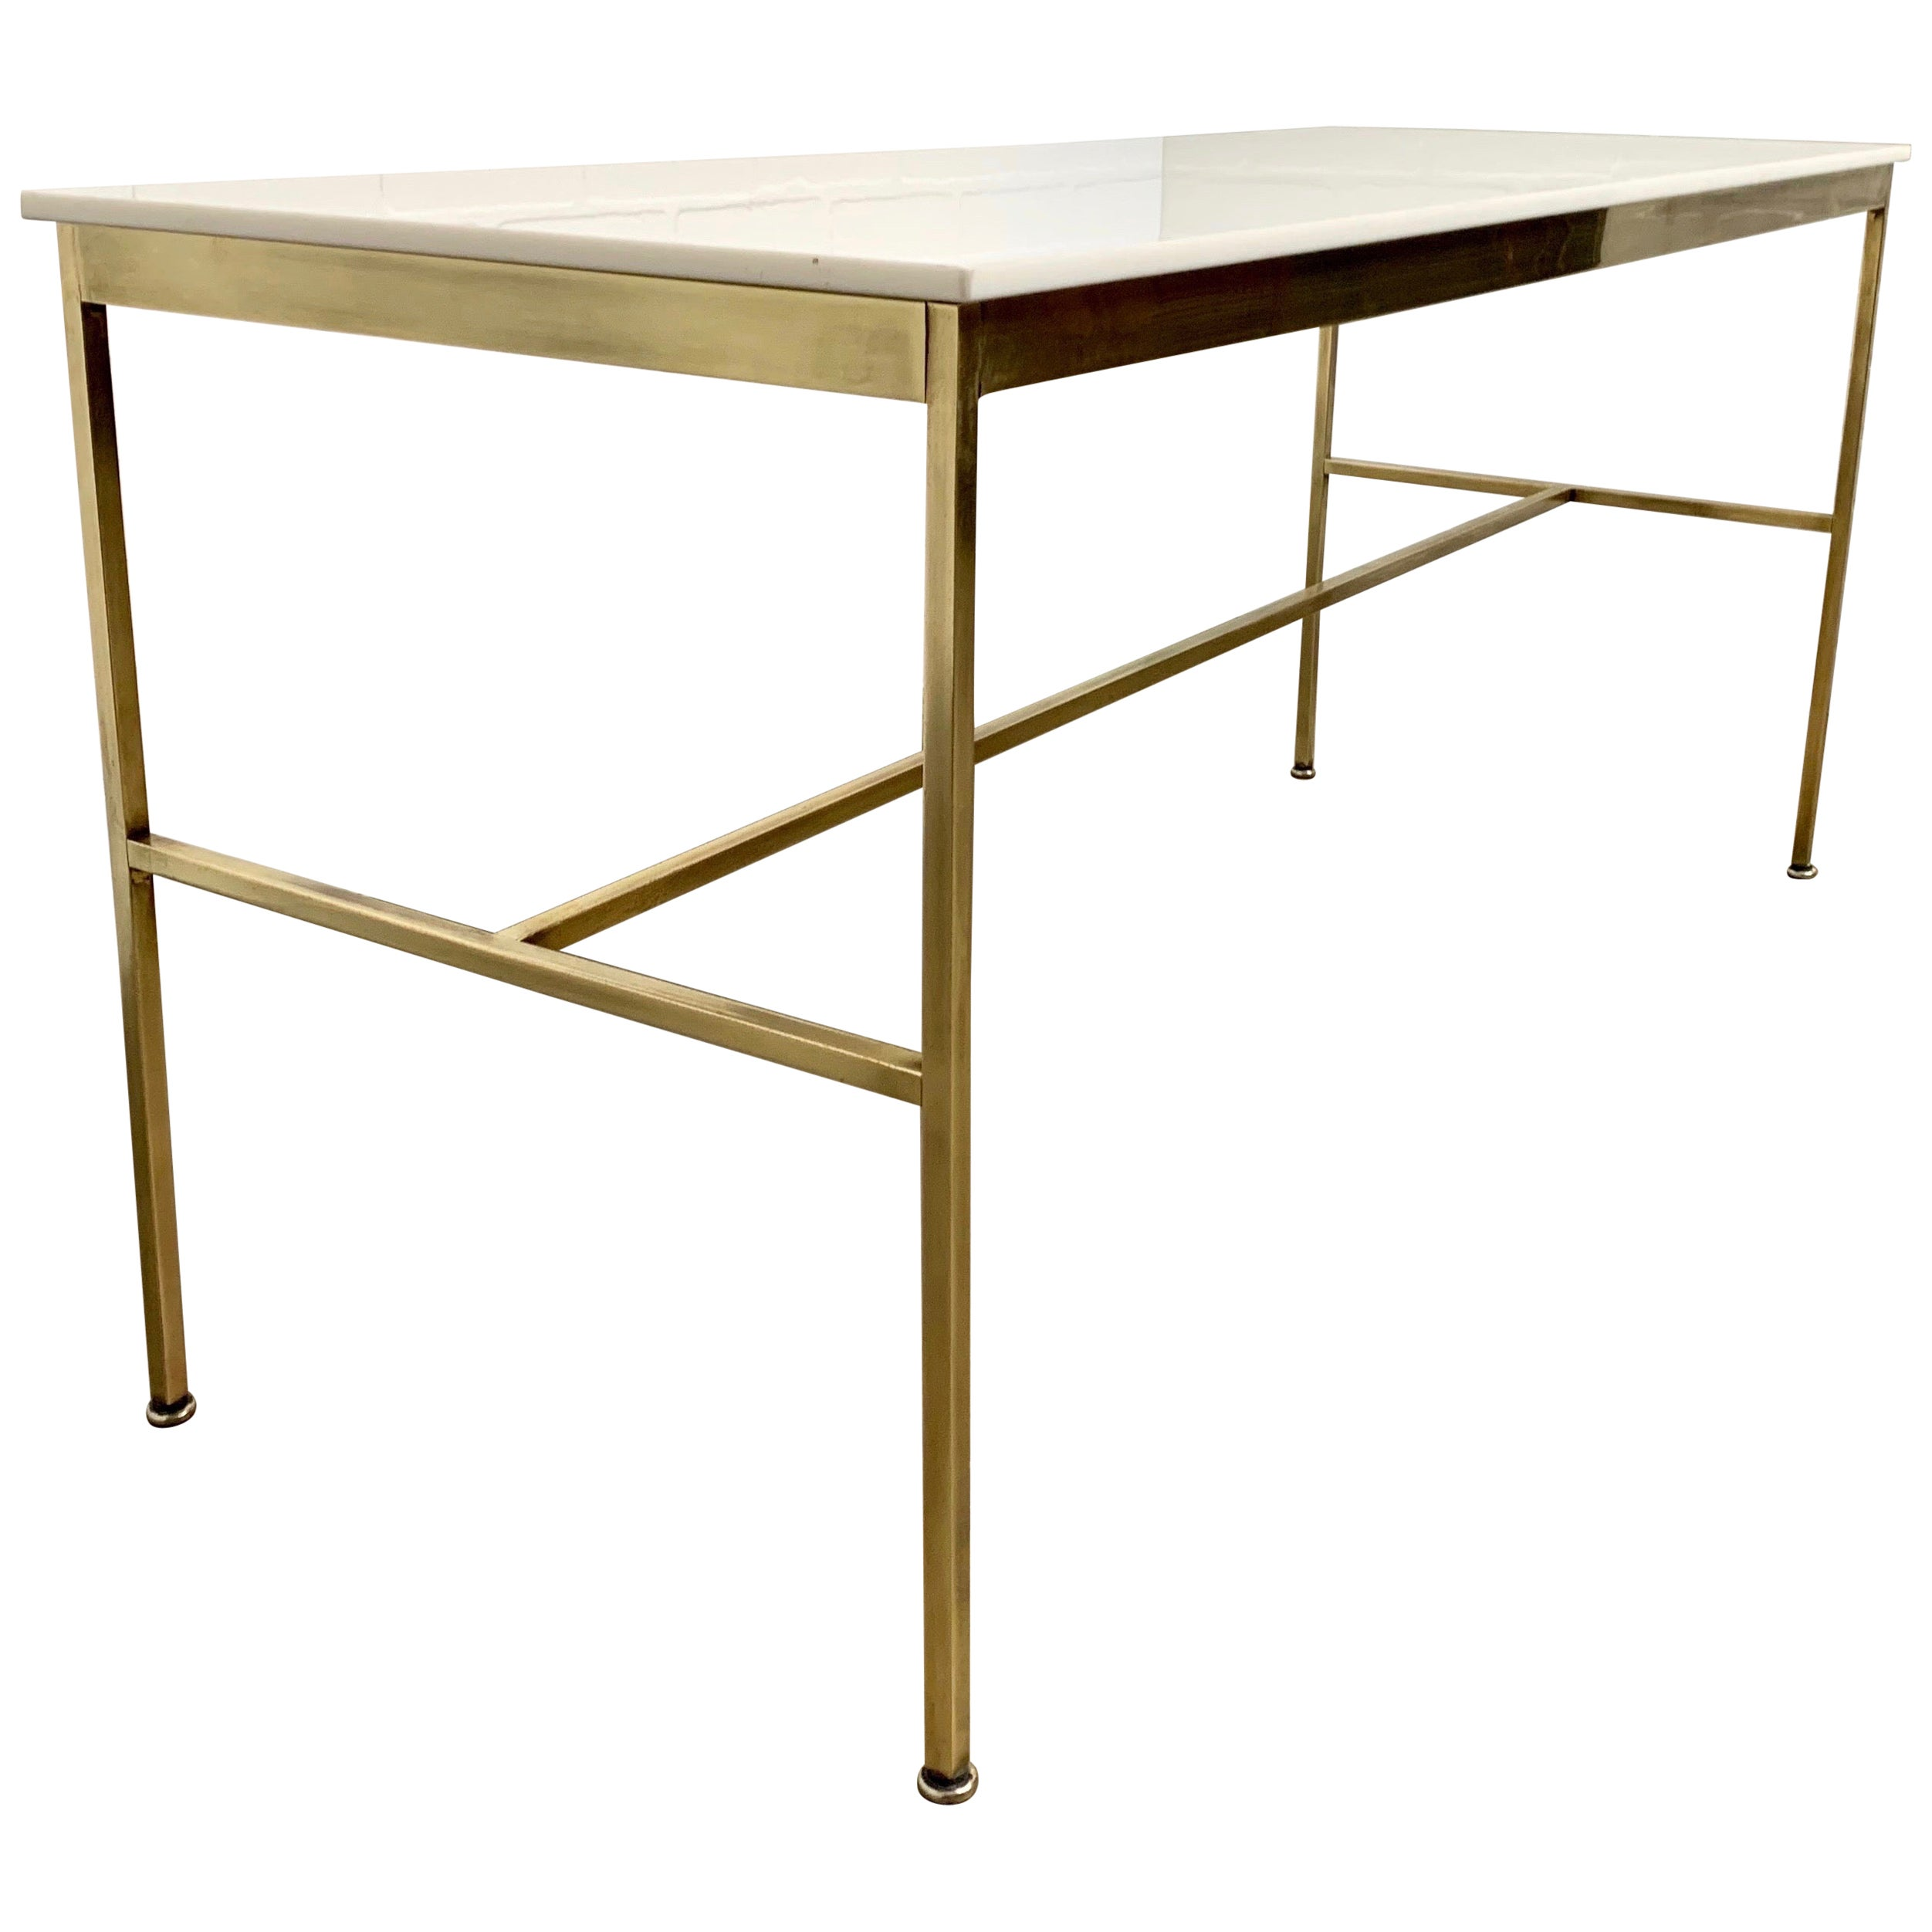 Brass and Vitrolite Console Table by Paul McCobb